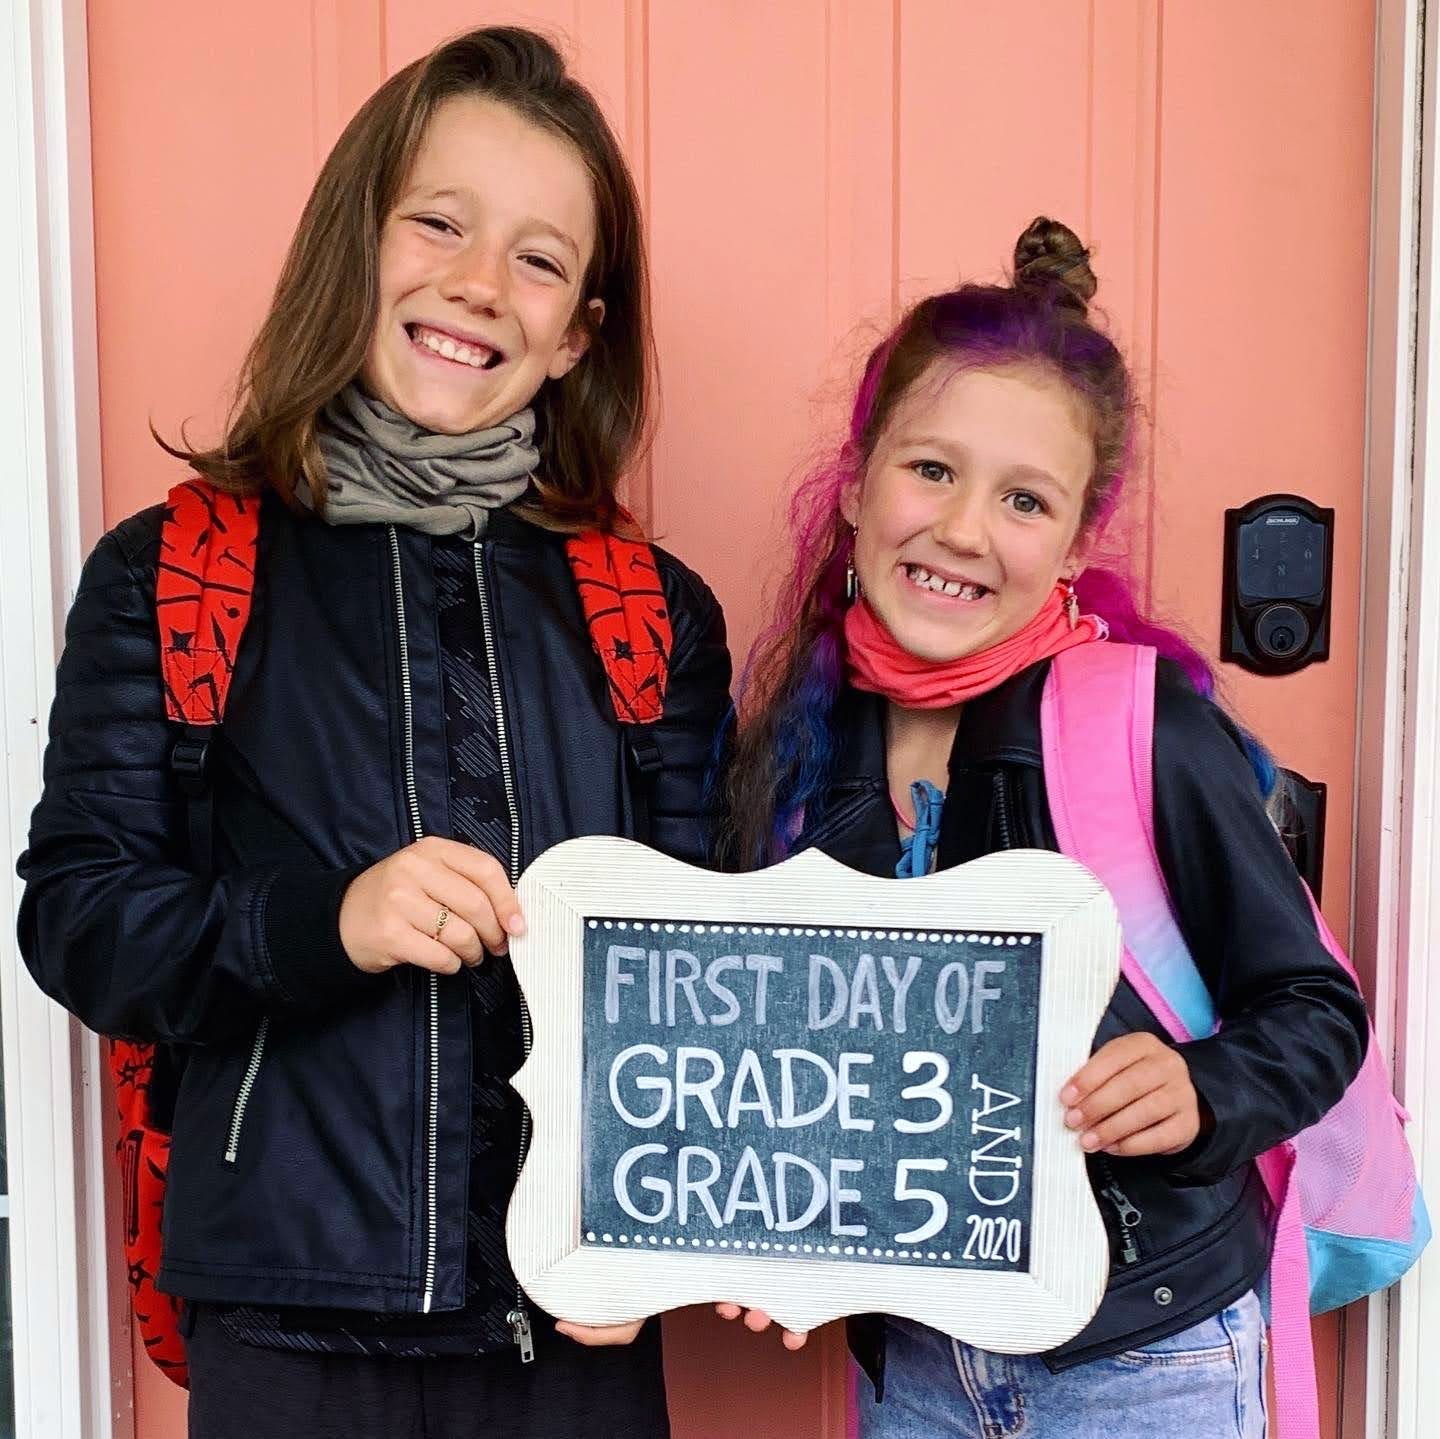 Heather's son started Grade 5 and her daughter started Grade 3, and they're both loving this unusual school year.